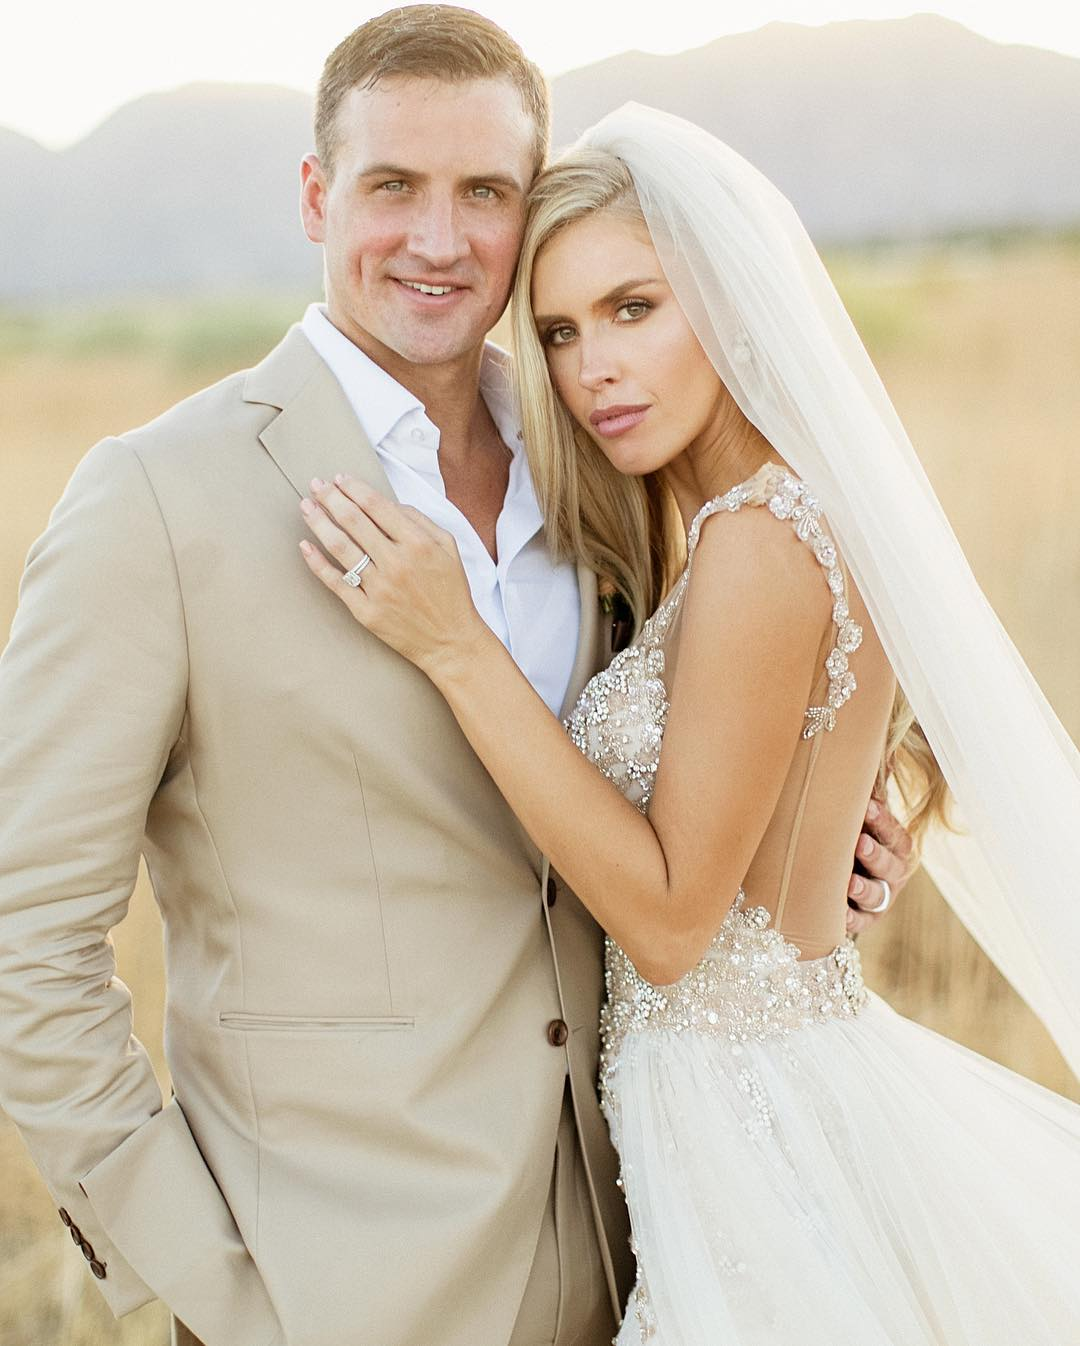 Real bride in Galia Lahav wedding dress Kayla Rae Reid bride Ryan Lochte olympic swimmer